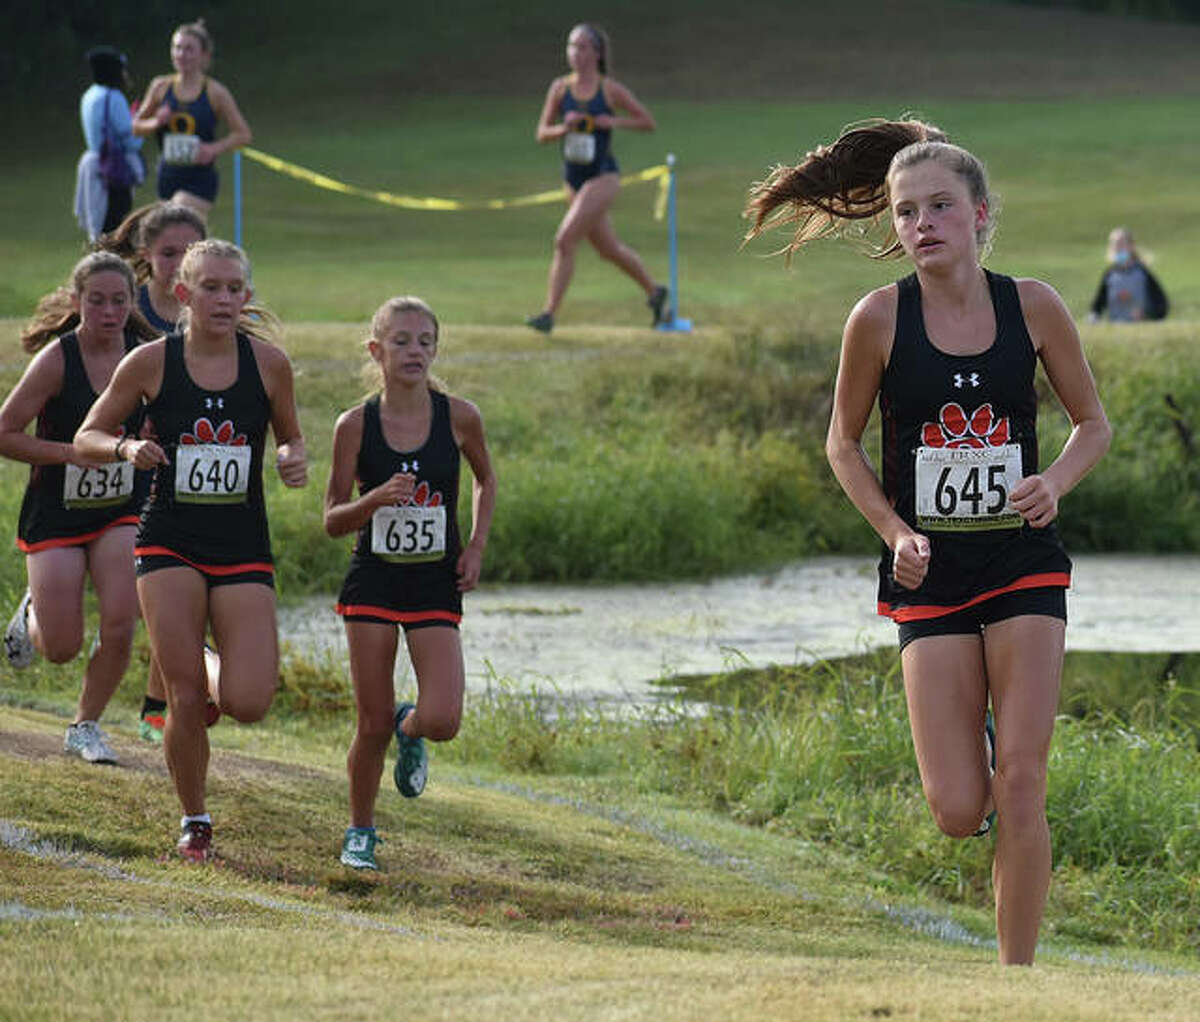 Edwardsville's Dylan Peel runs in front of her teammates Olivia Coll (No. 634), Kaitlyn Loyet (No. 640) and Whitney Dyckman (No. 635) during the Southwestern Conference Meet at Clinton Hills in Swansea.